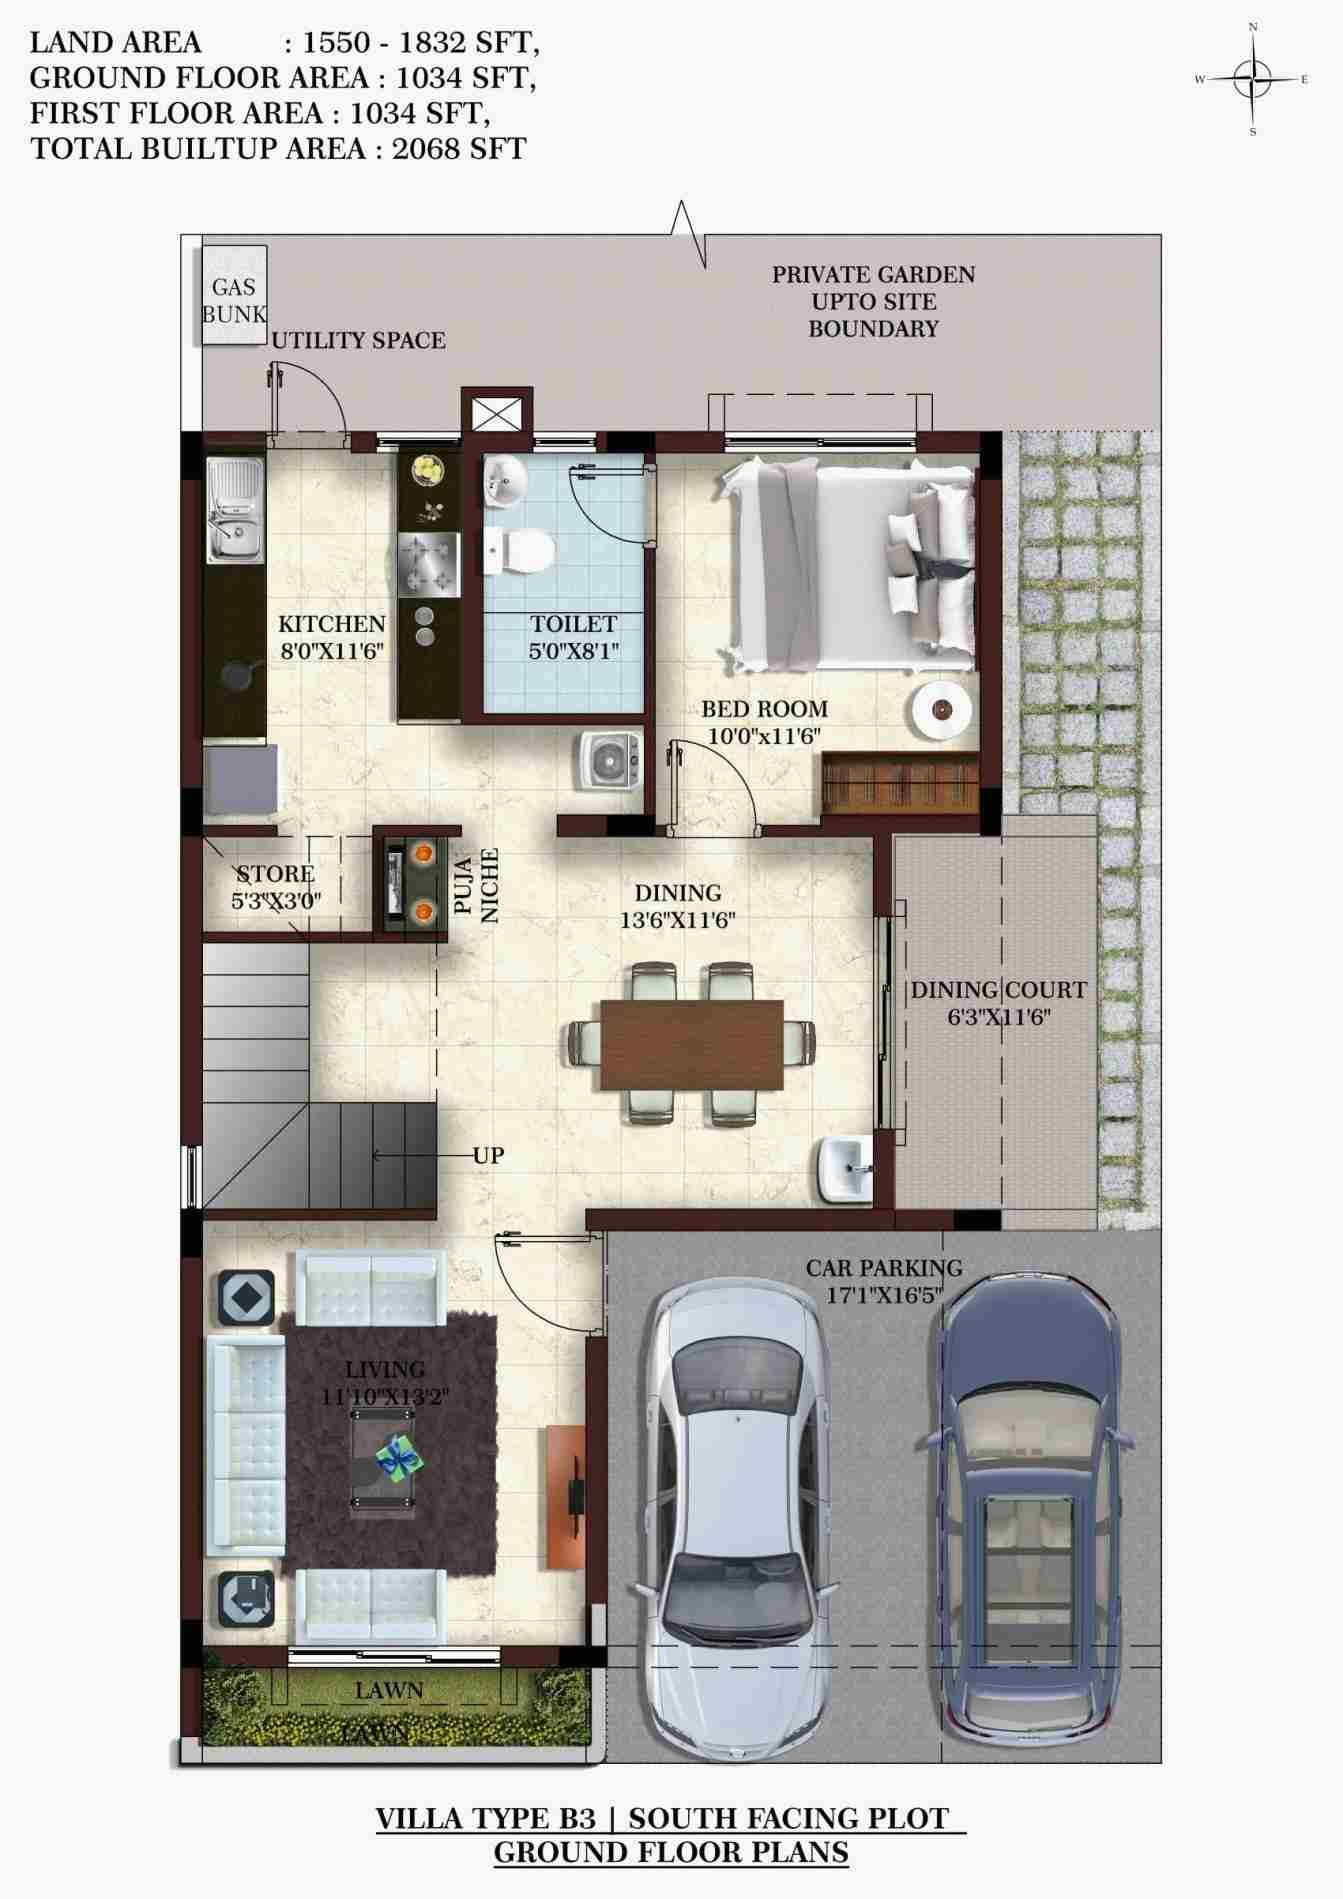 sq ft house plans bedroom indian also south facing home plan elegant image result for rh pinterest